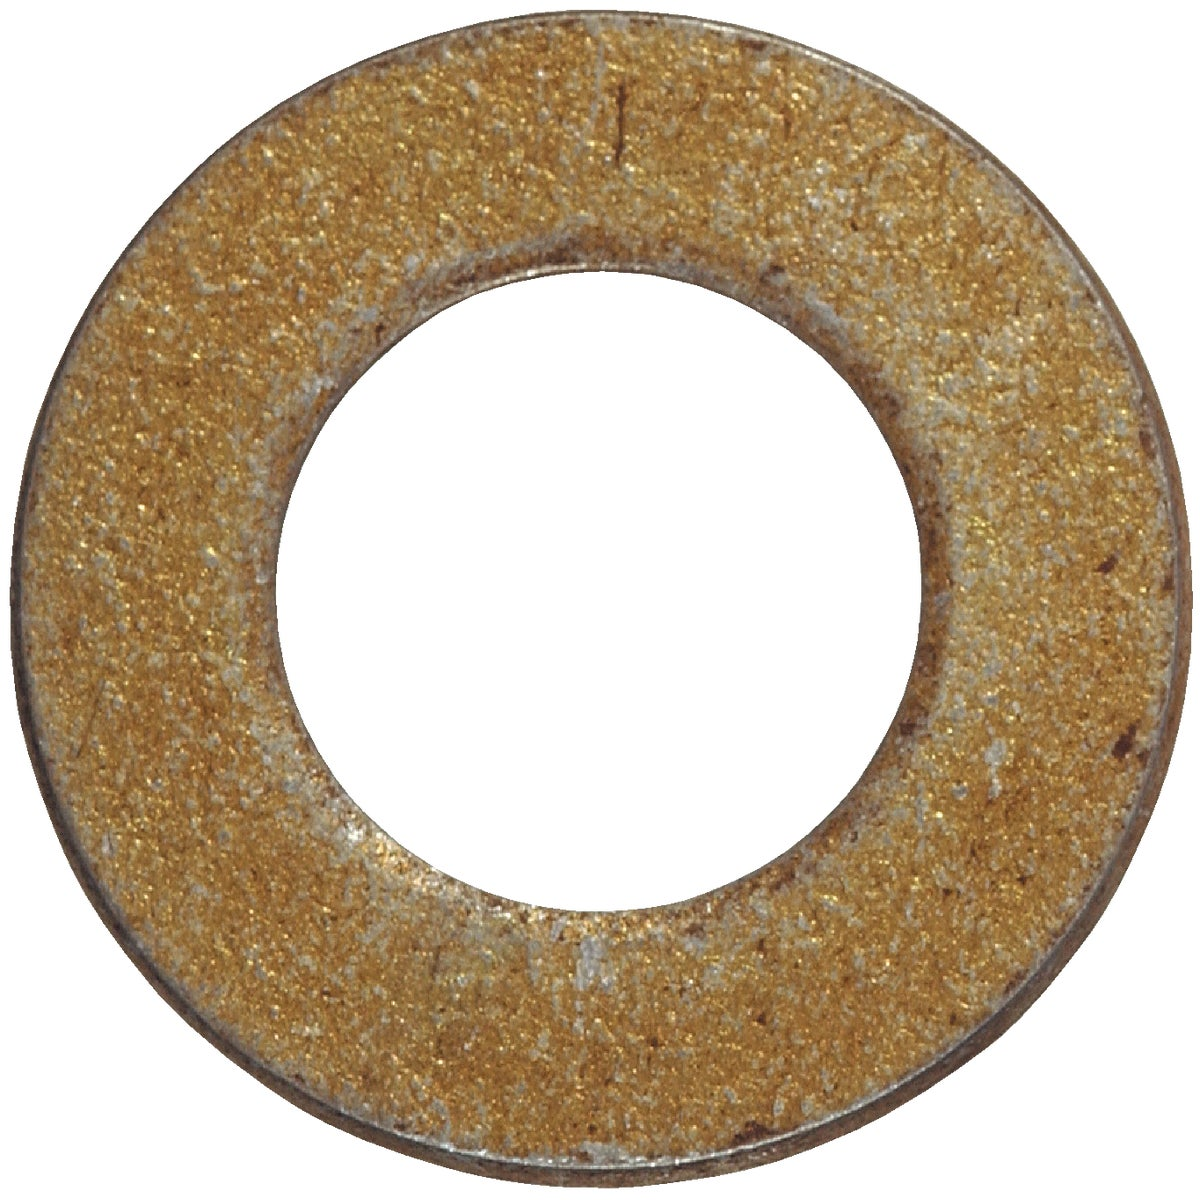 "5/16"" SAE FLAT WASHER - 280322 by Hillman Fastener"